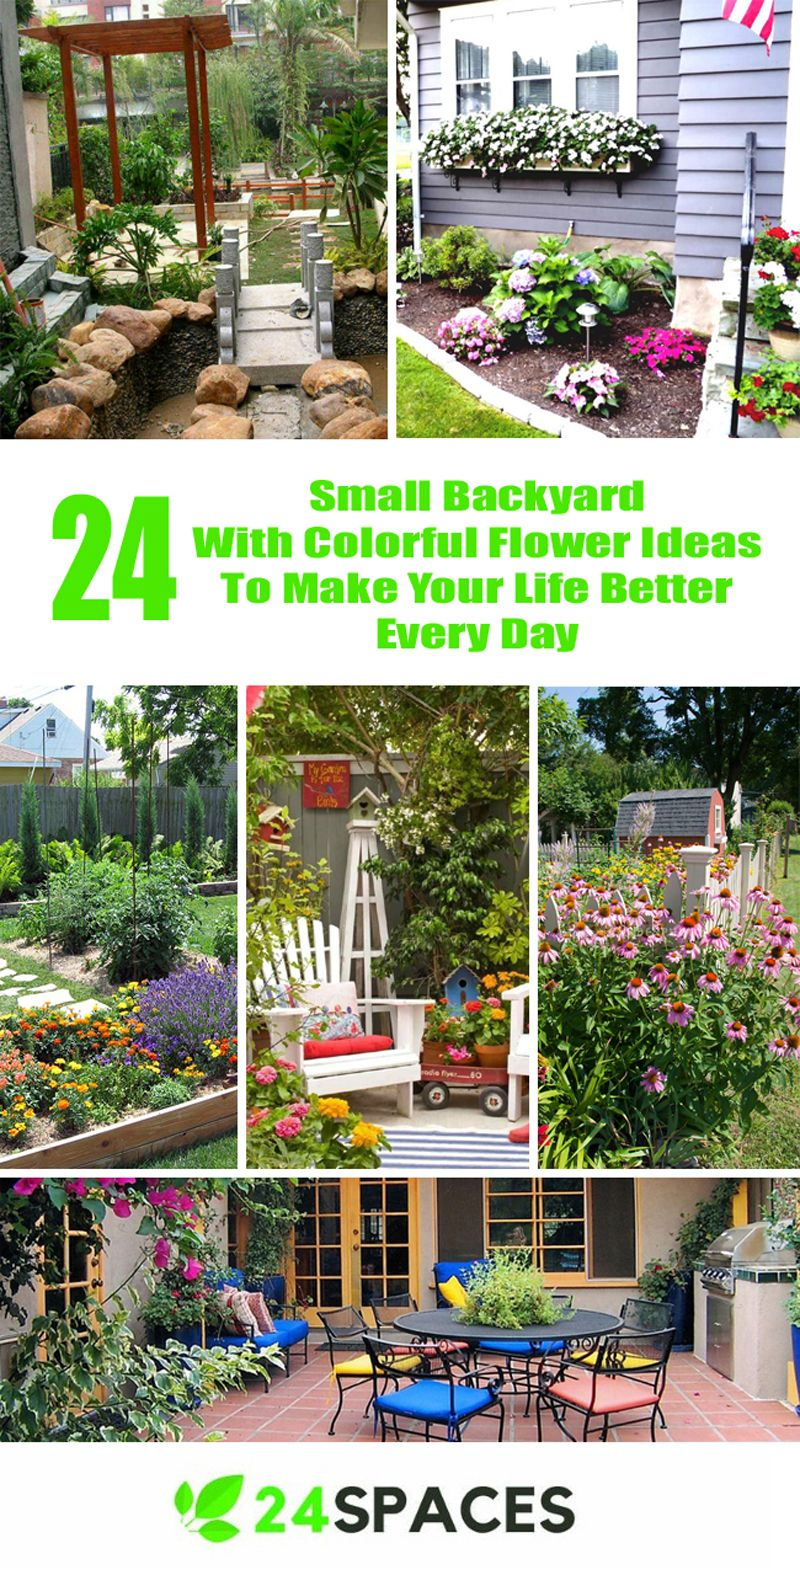 24 Awesome Small Backyard Inspirations With Colorful Flower Ideas for Colorful Backyard Ideas